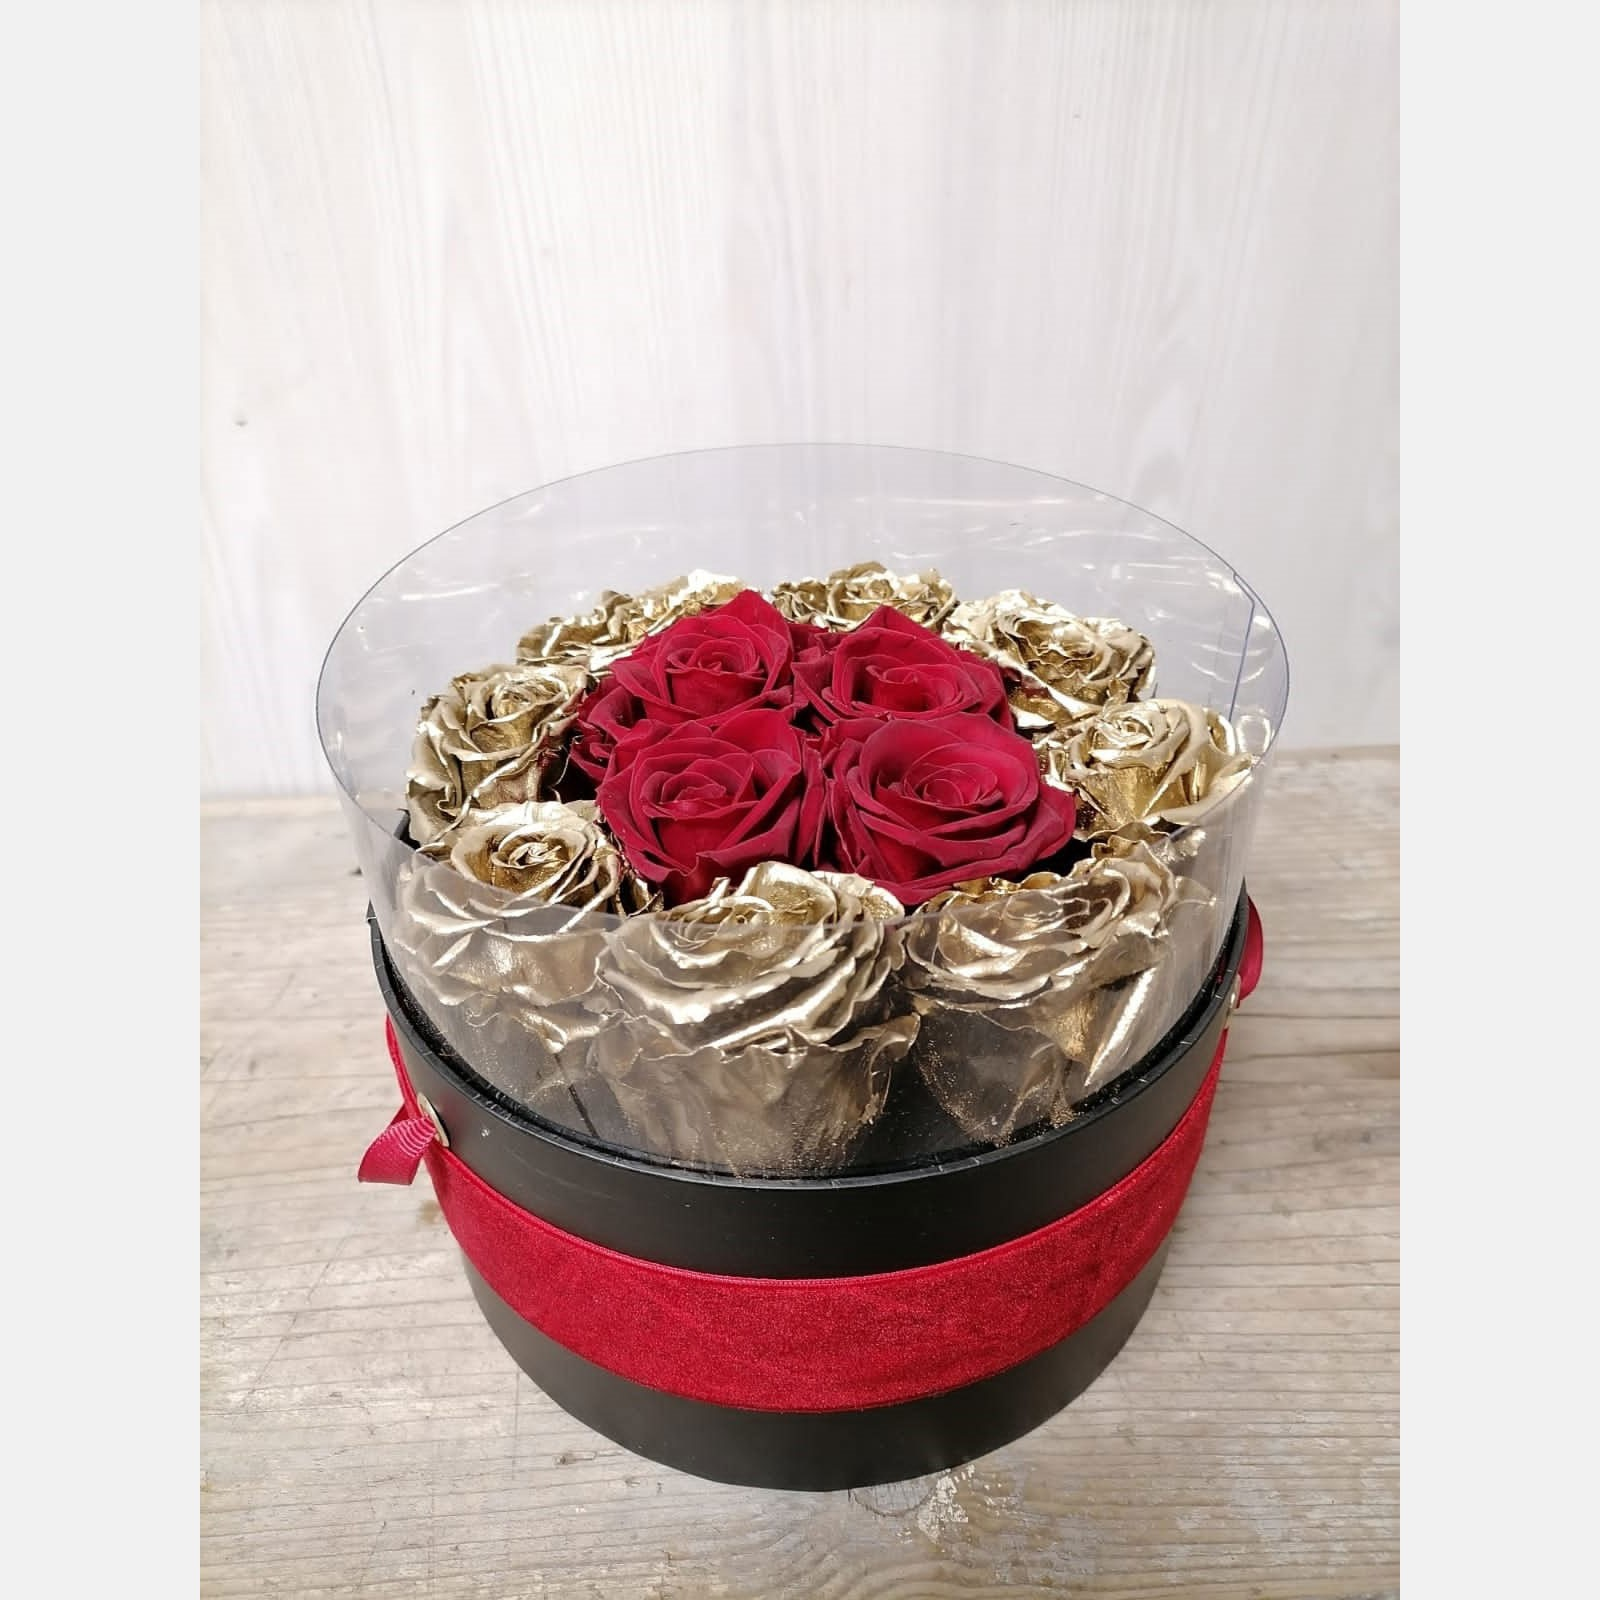 Eternity - Box cilindro nero 16x11 rose oro e rosse